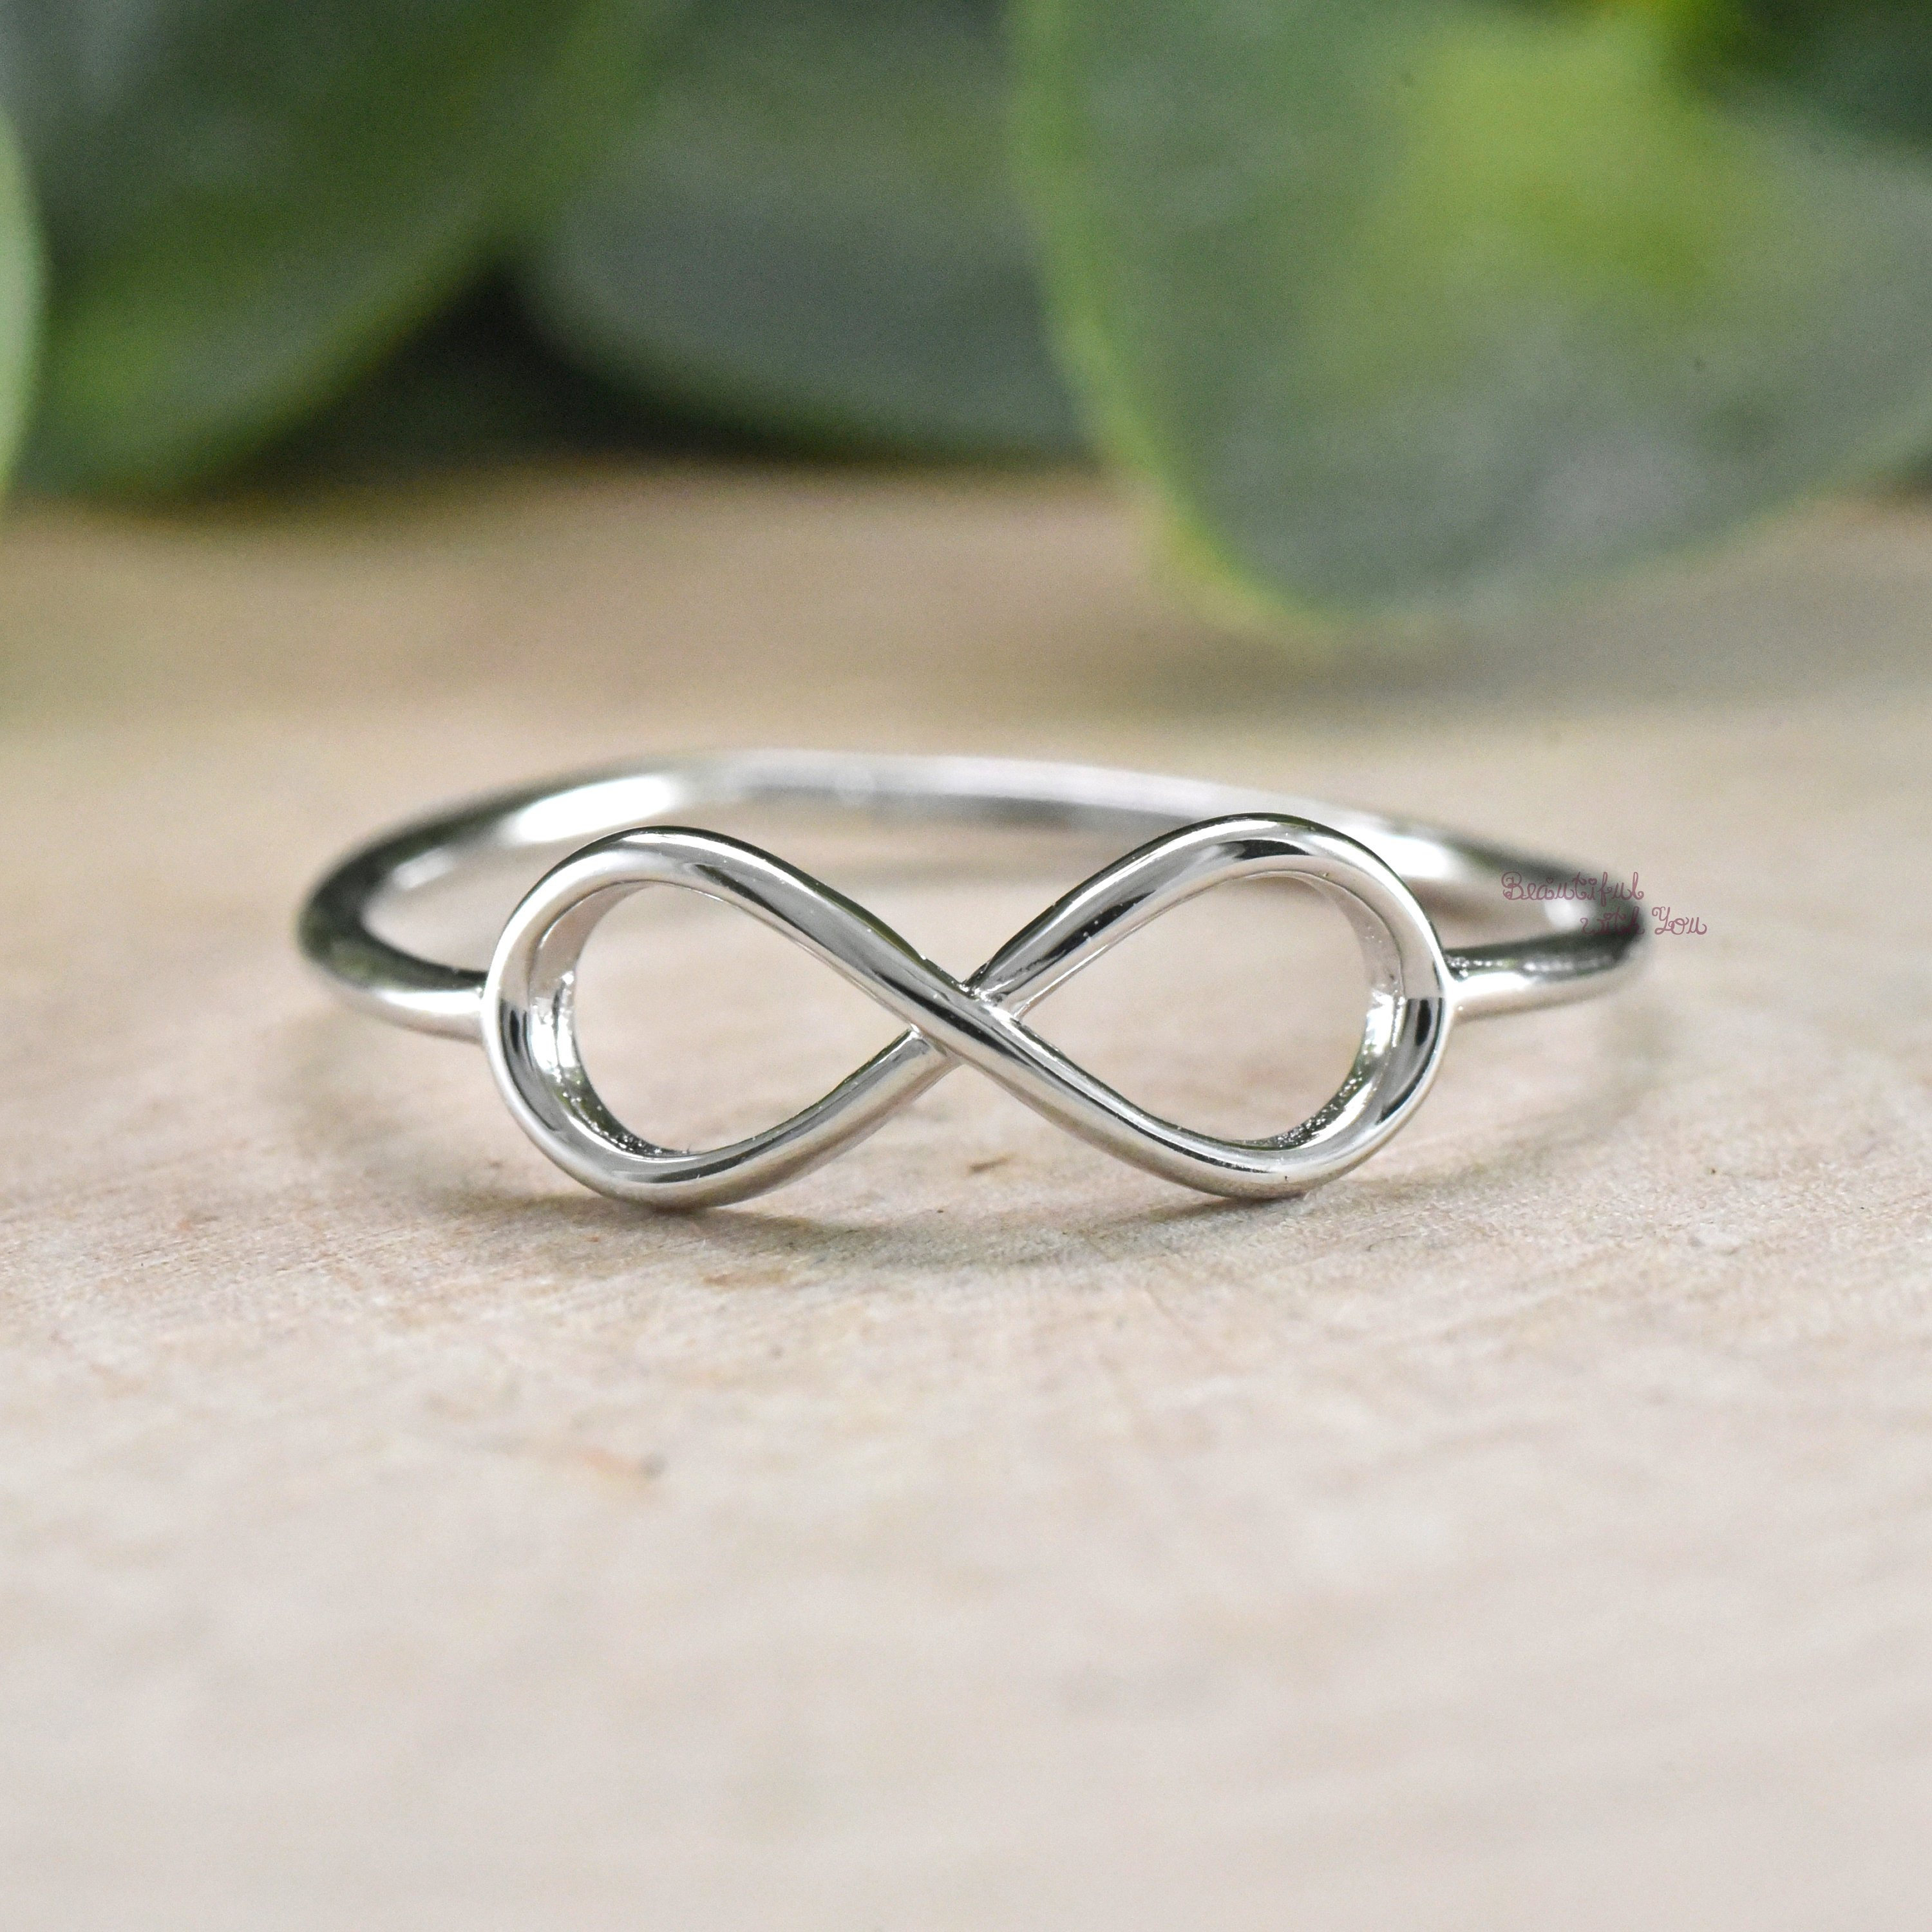 Simple Infinity Ring Silver, Infinity Ring, Womens Infinity Ring Silver,  Infinity Wedding Ring Womens, Infinity Ring For Her Girlfriend Throughout 2018 Simple Infinity Band Rings (Gallery 8 of 25)